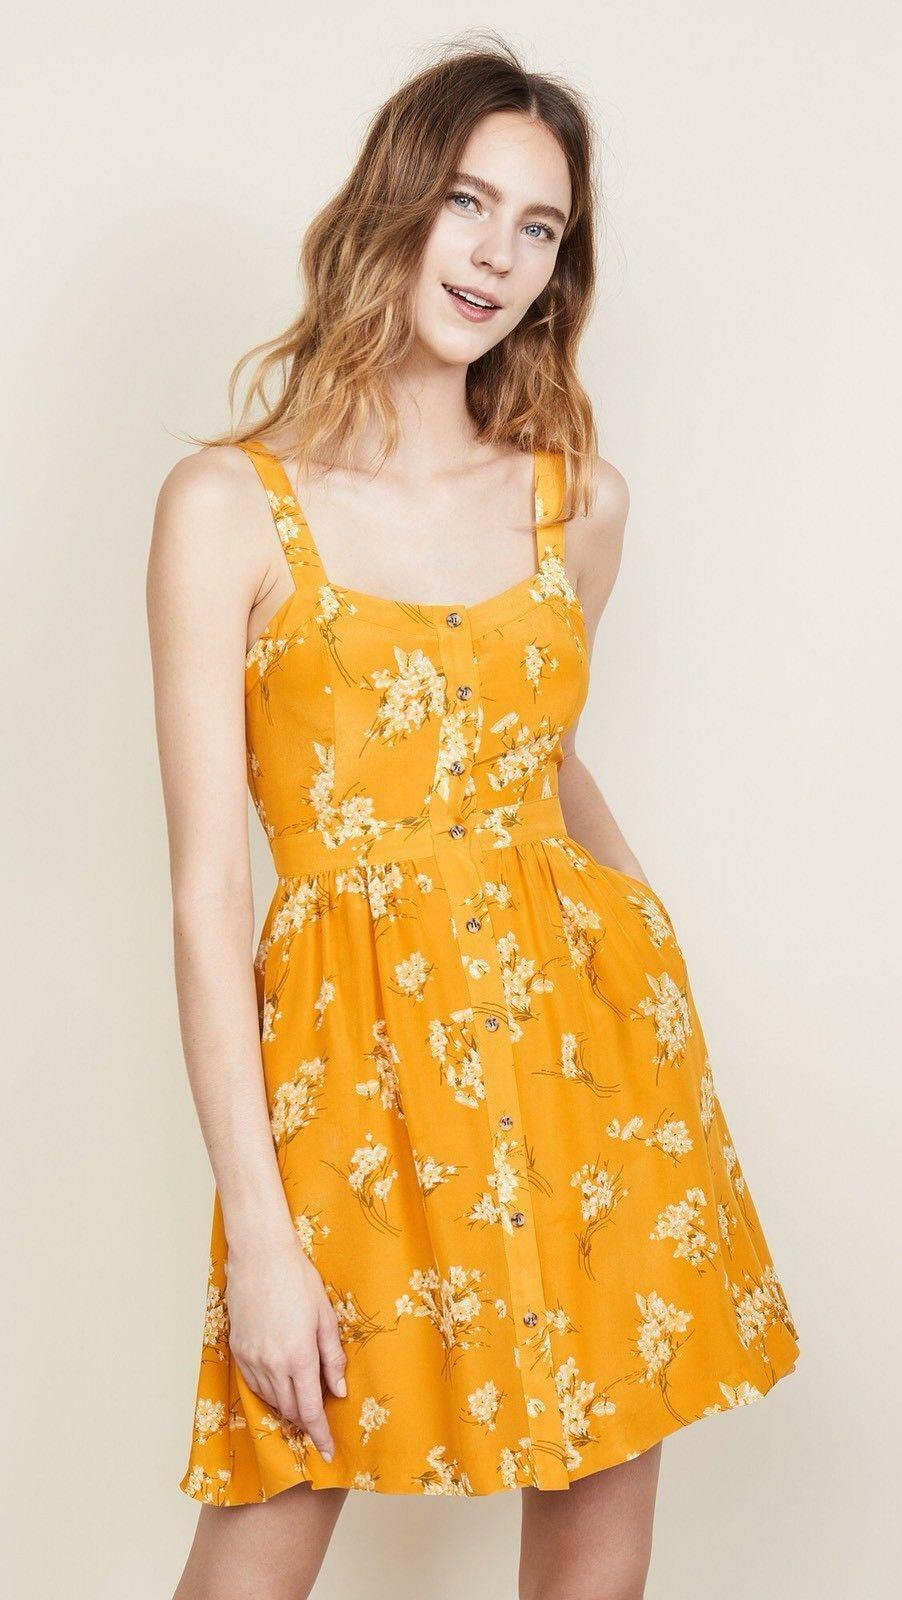 Madewell Silk Fleur Bow Back Dress in Butterfly Garden Größe 10 Style H7269